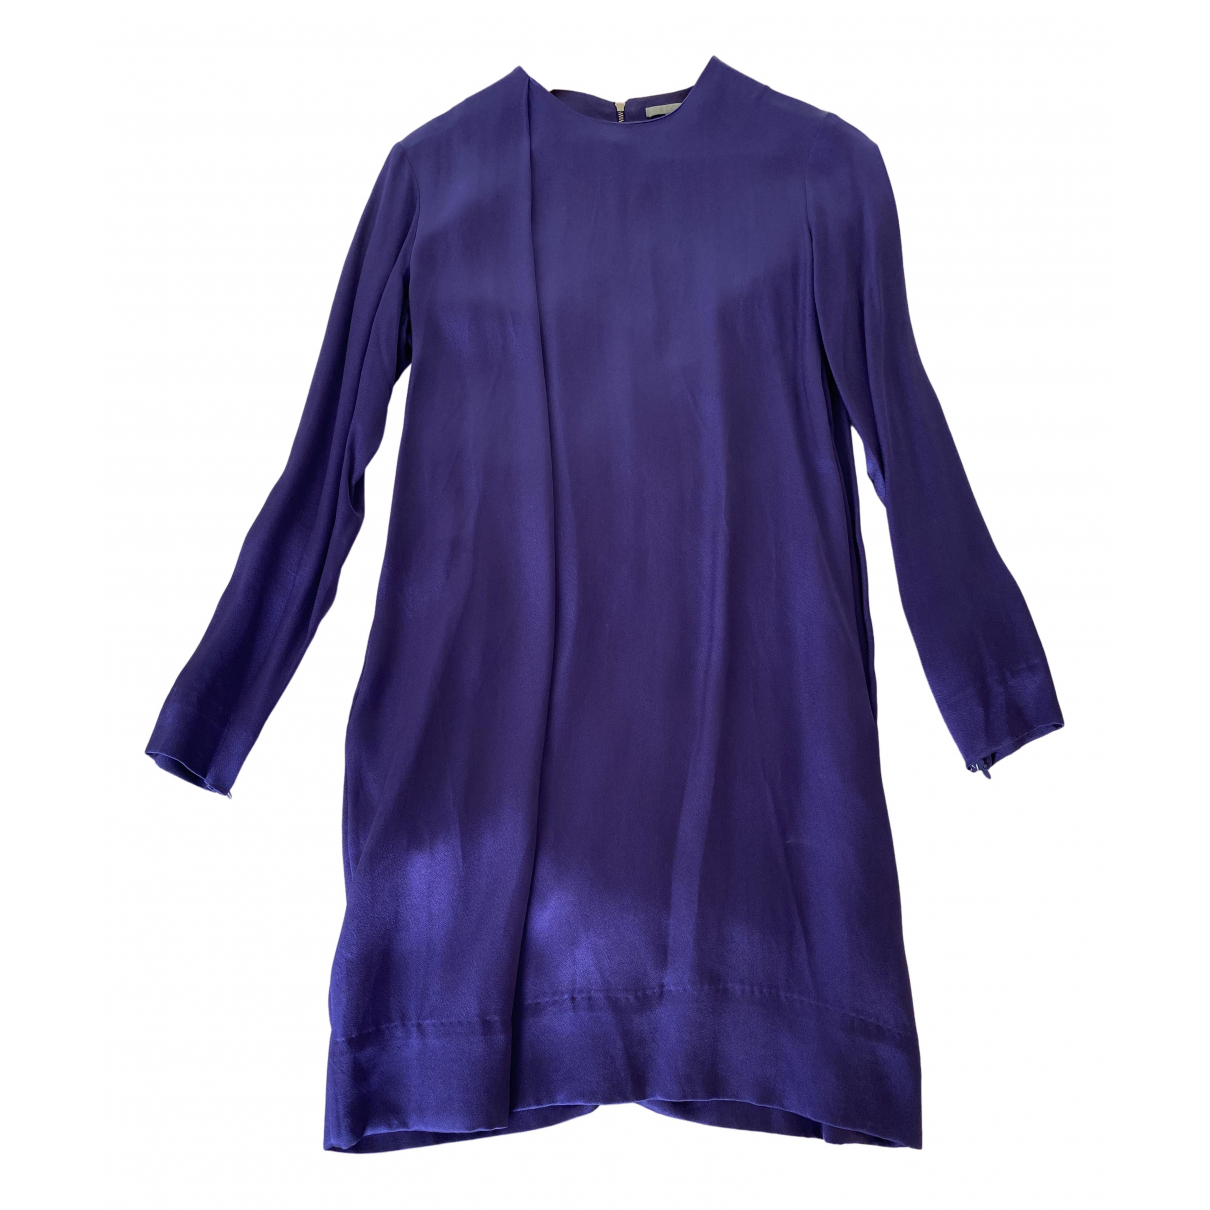 Cos \N Purple dress for Women 36 FR